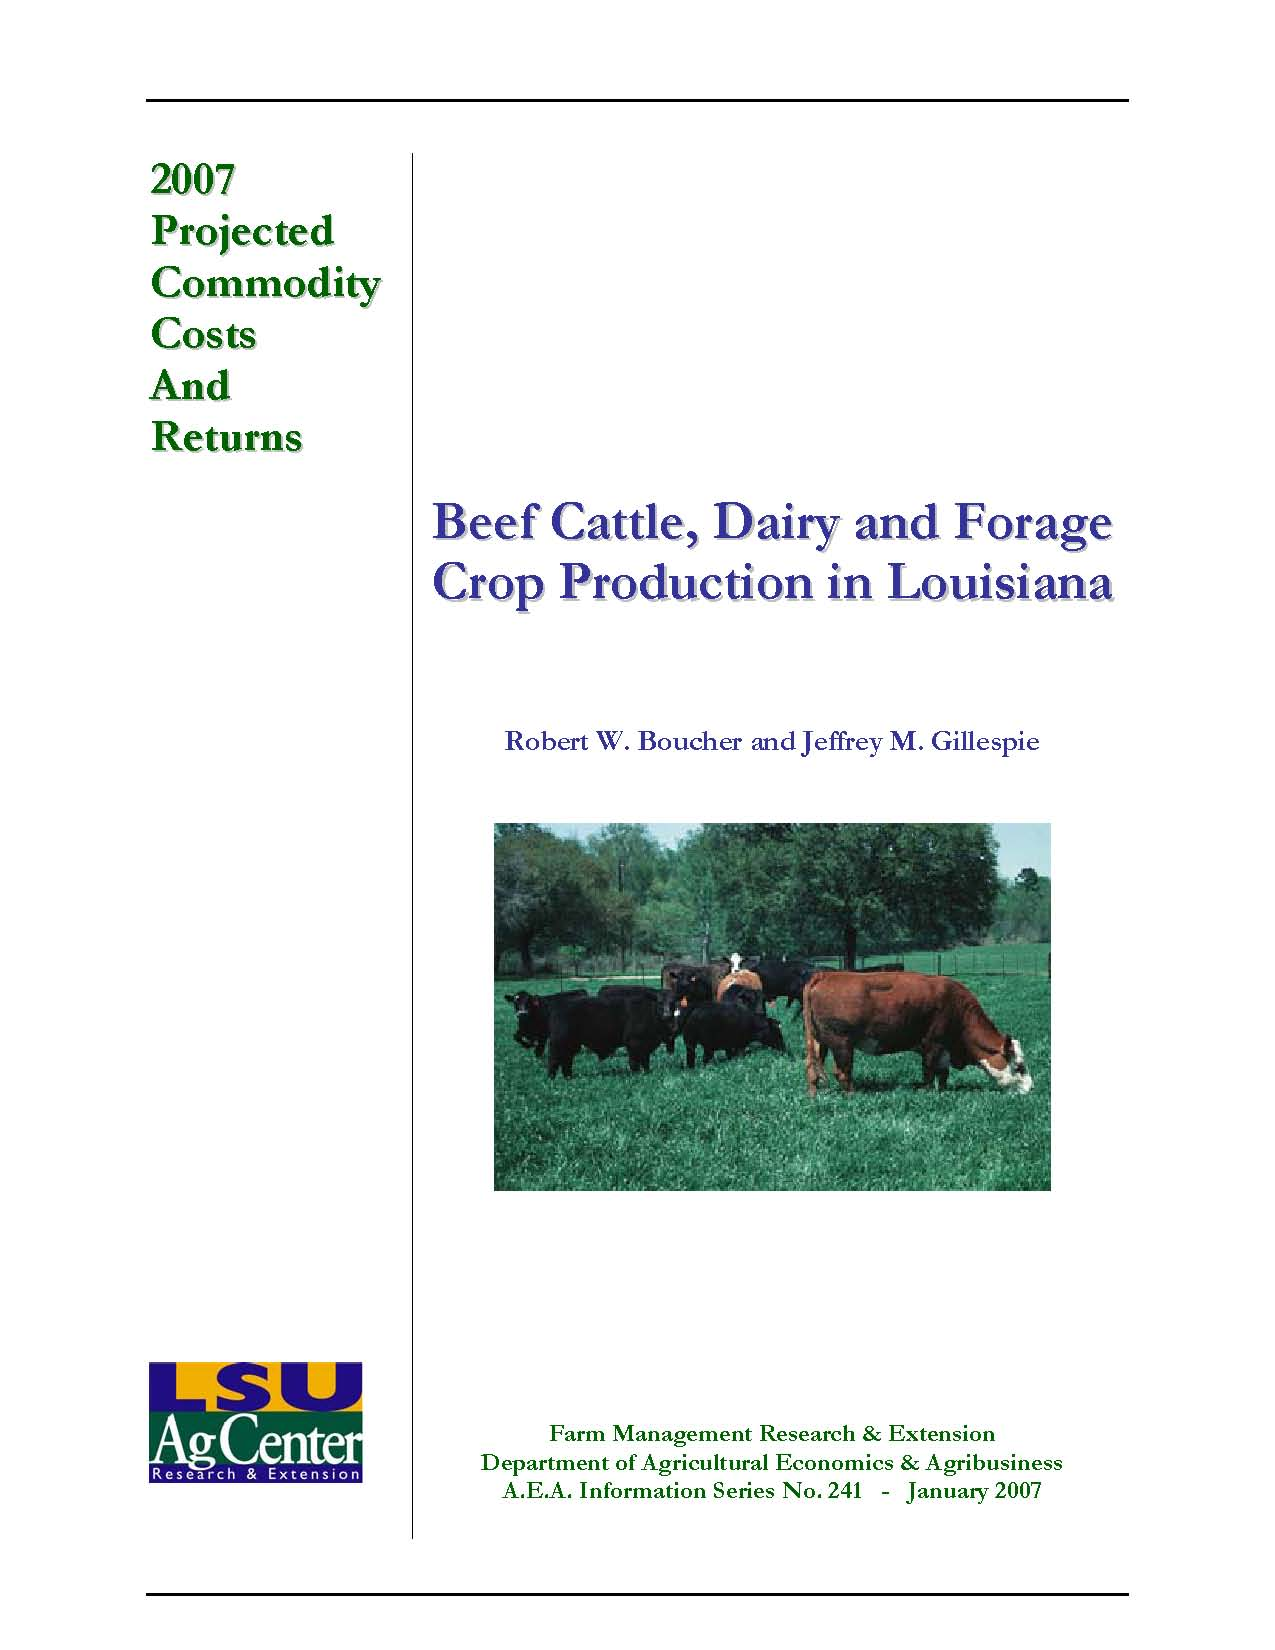 2007 Louisiana Projected Beef Cattle Dairy and Forage Crop Production Costs